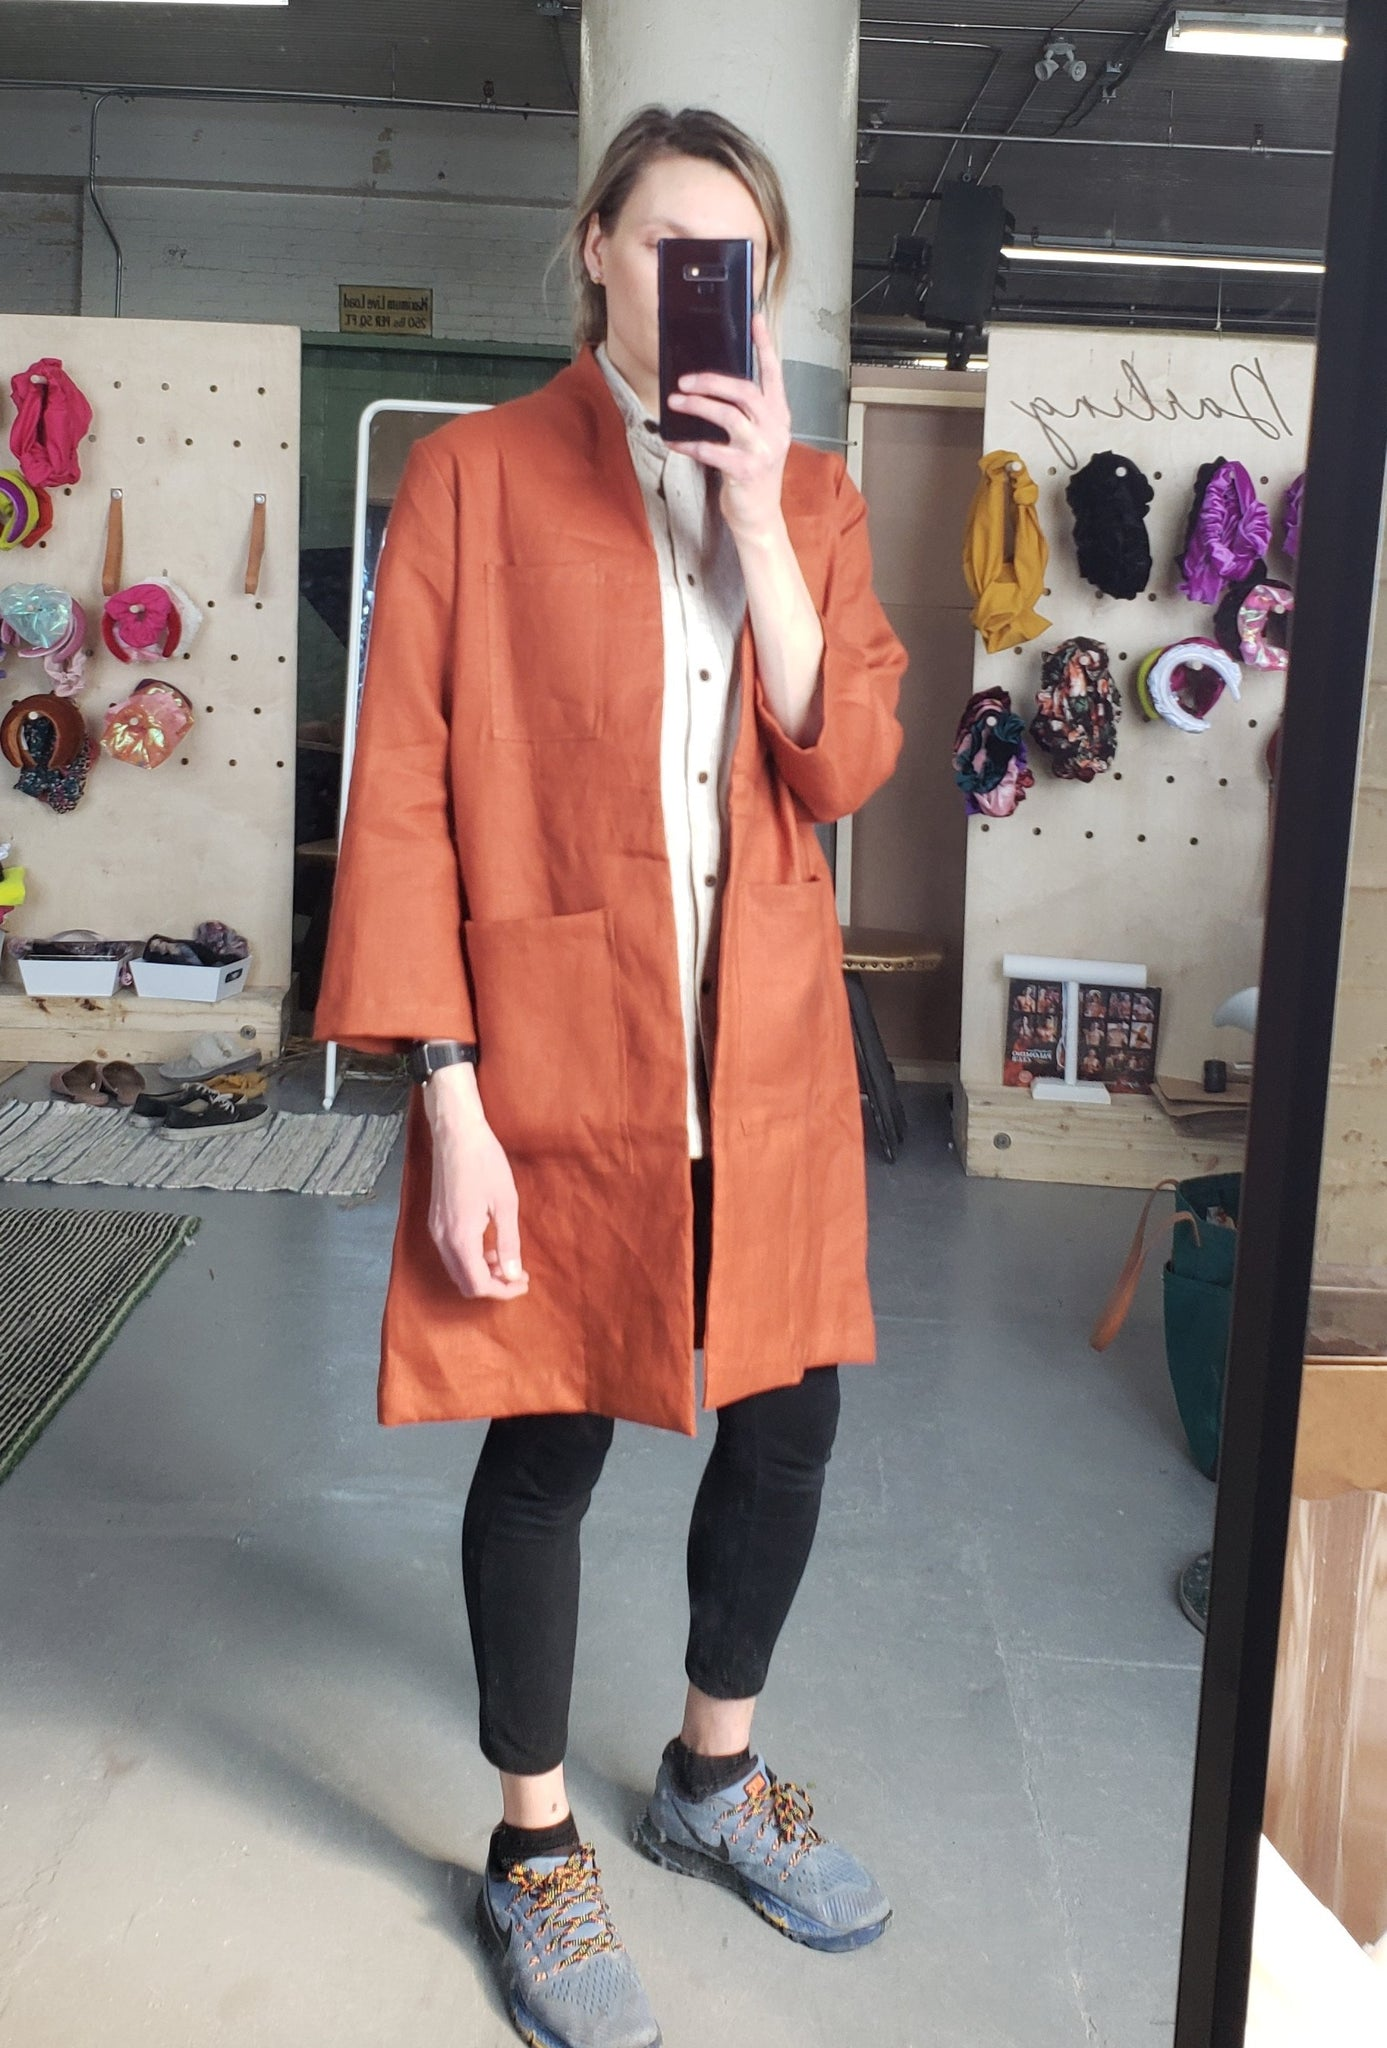 rust orange lab coat worn by a woman with leggings and runners holding a phone taking a picture in the mirror